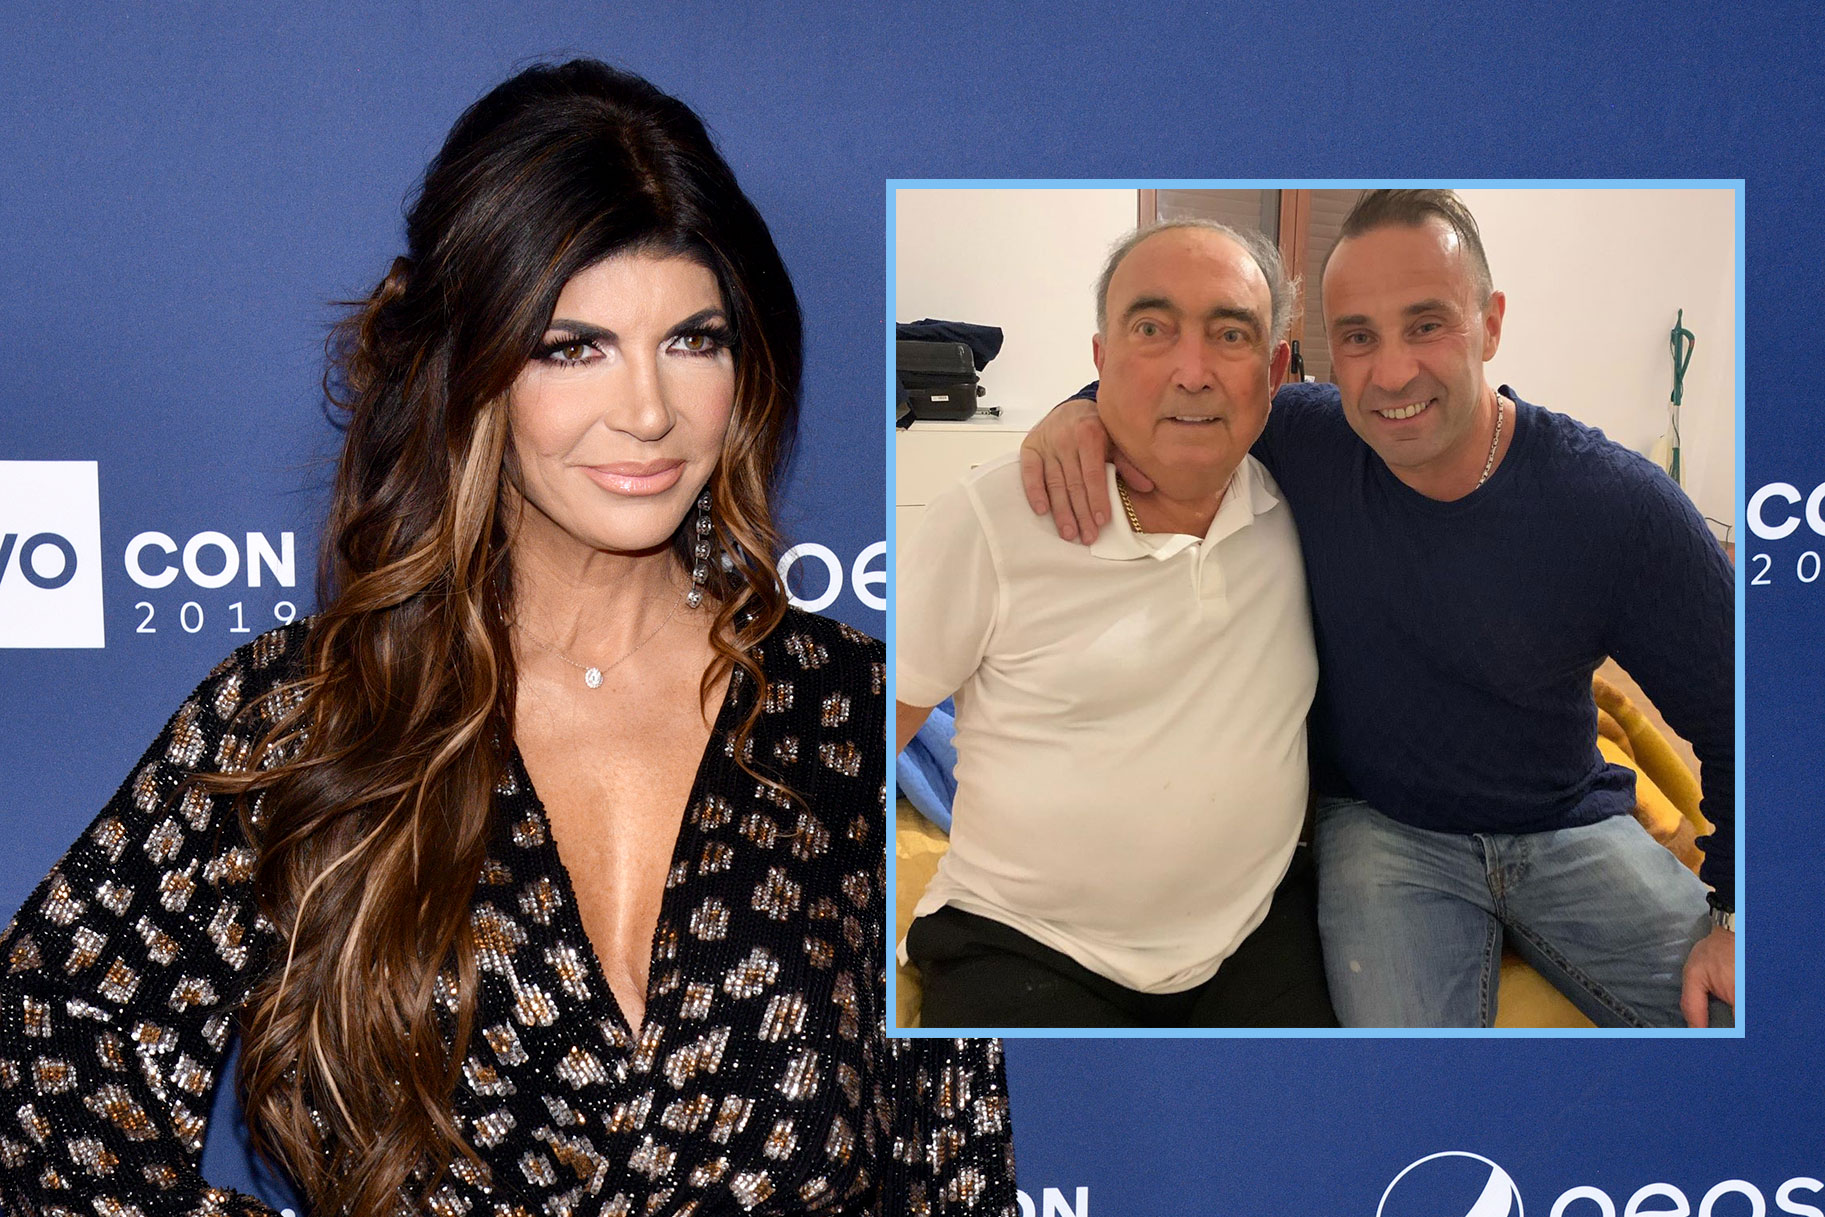 Does Teresa Giudice's Father Want Her to Stay with Joe Giudice If He Gets Deported?